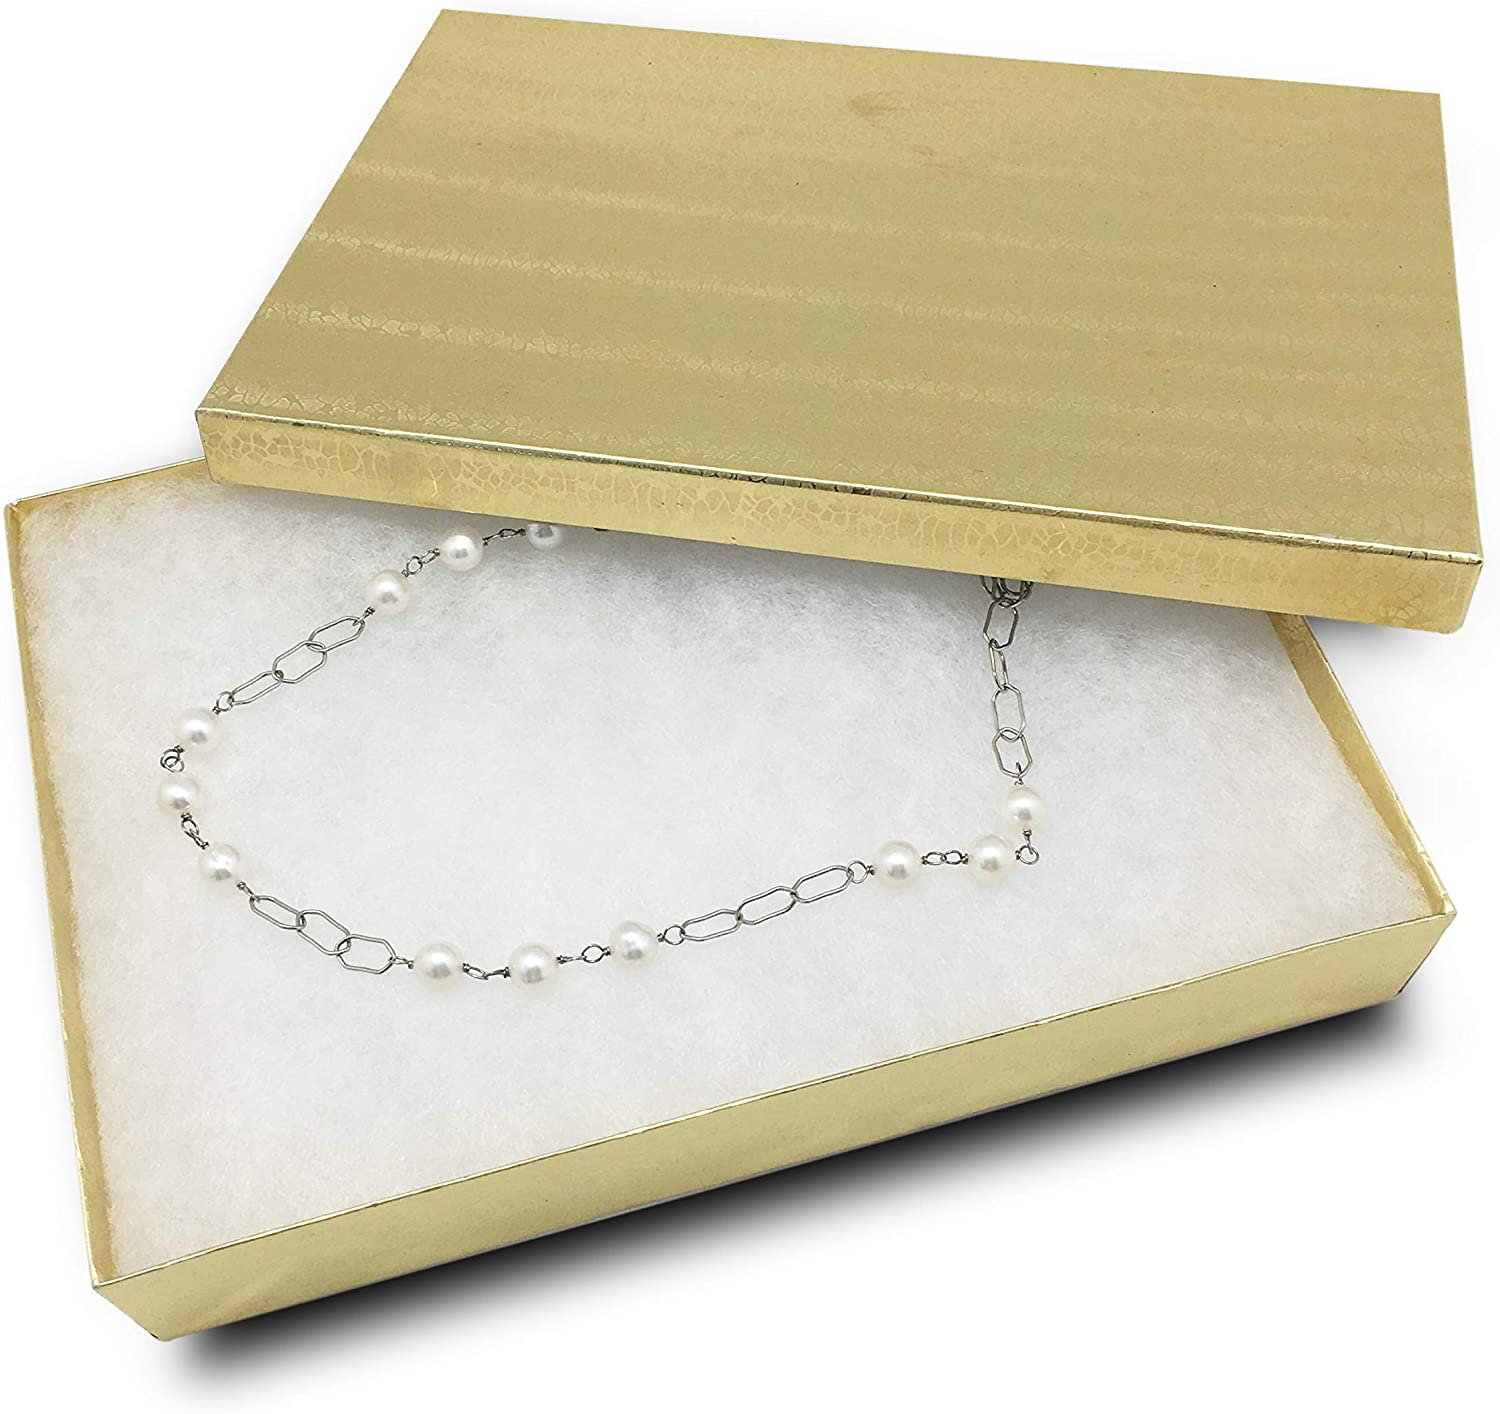 TheDisplayGuys 25-Pack Sales of SALE Be super welcome items from new works #85 Cotton Cardboard Filled Jewelry Paper